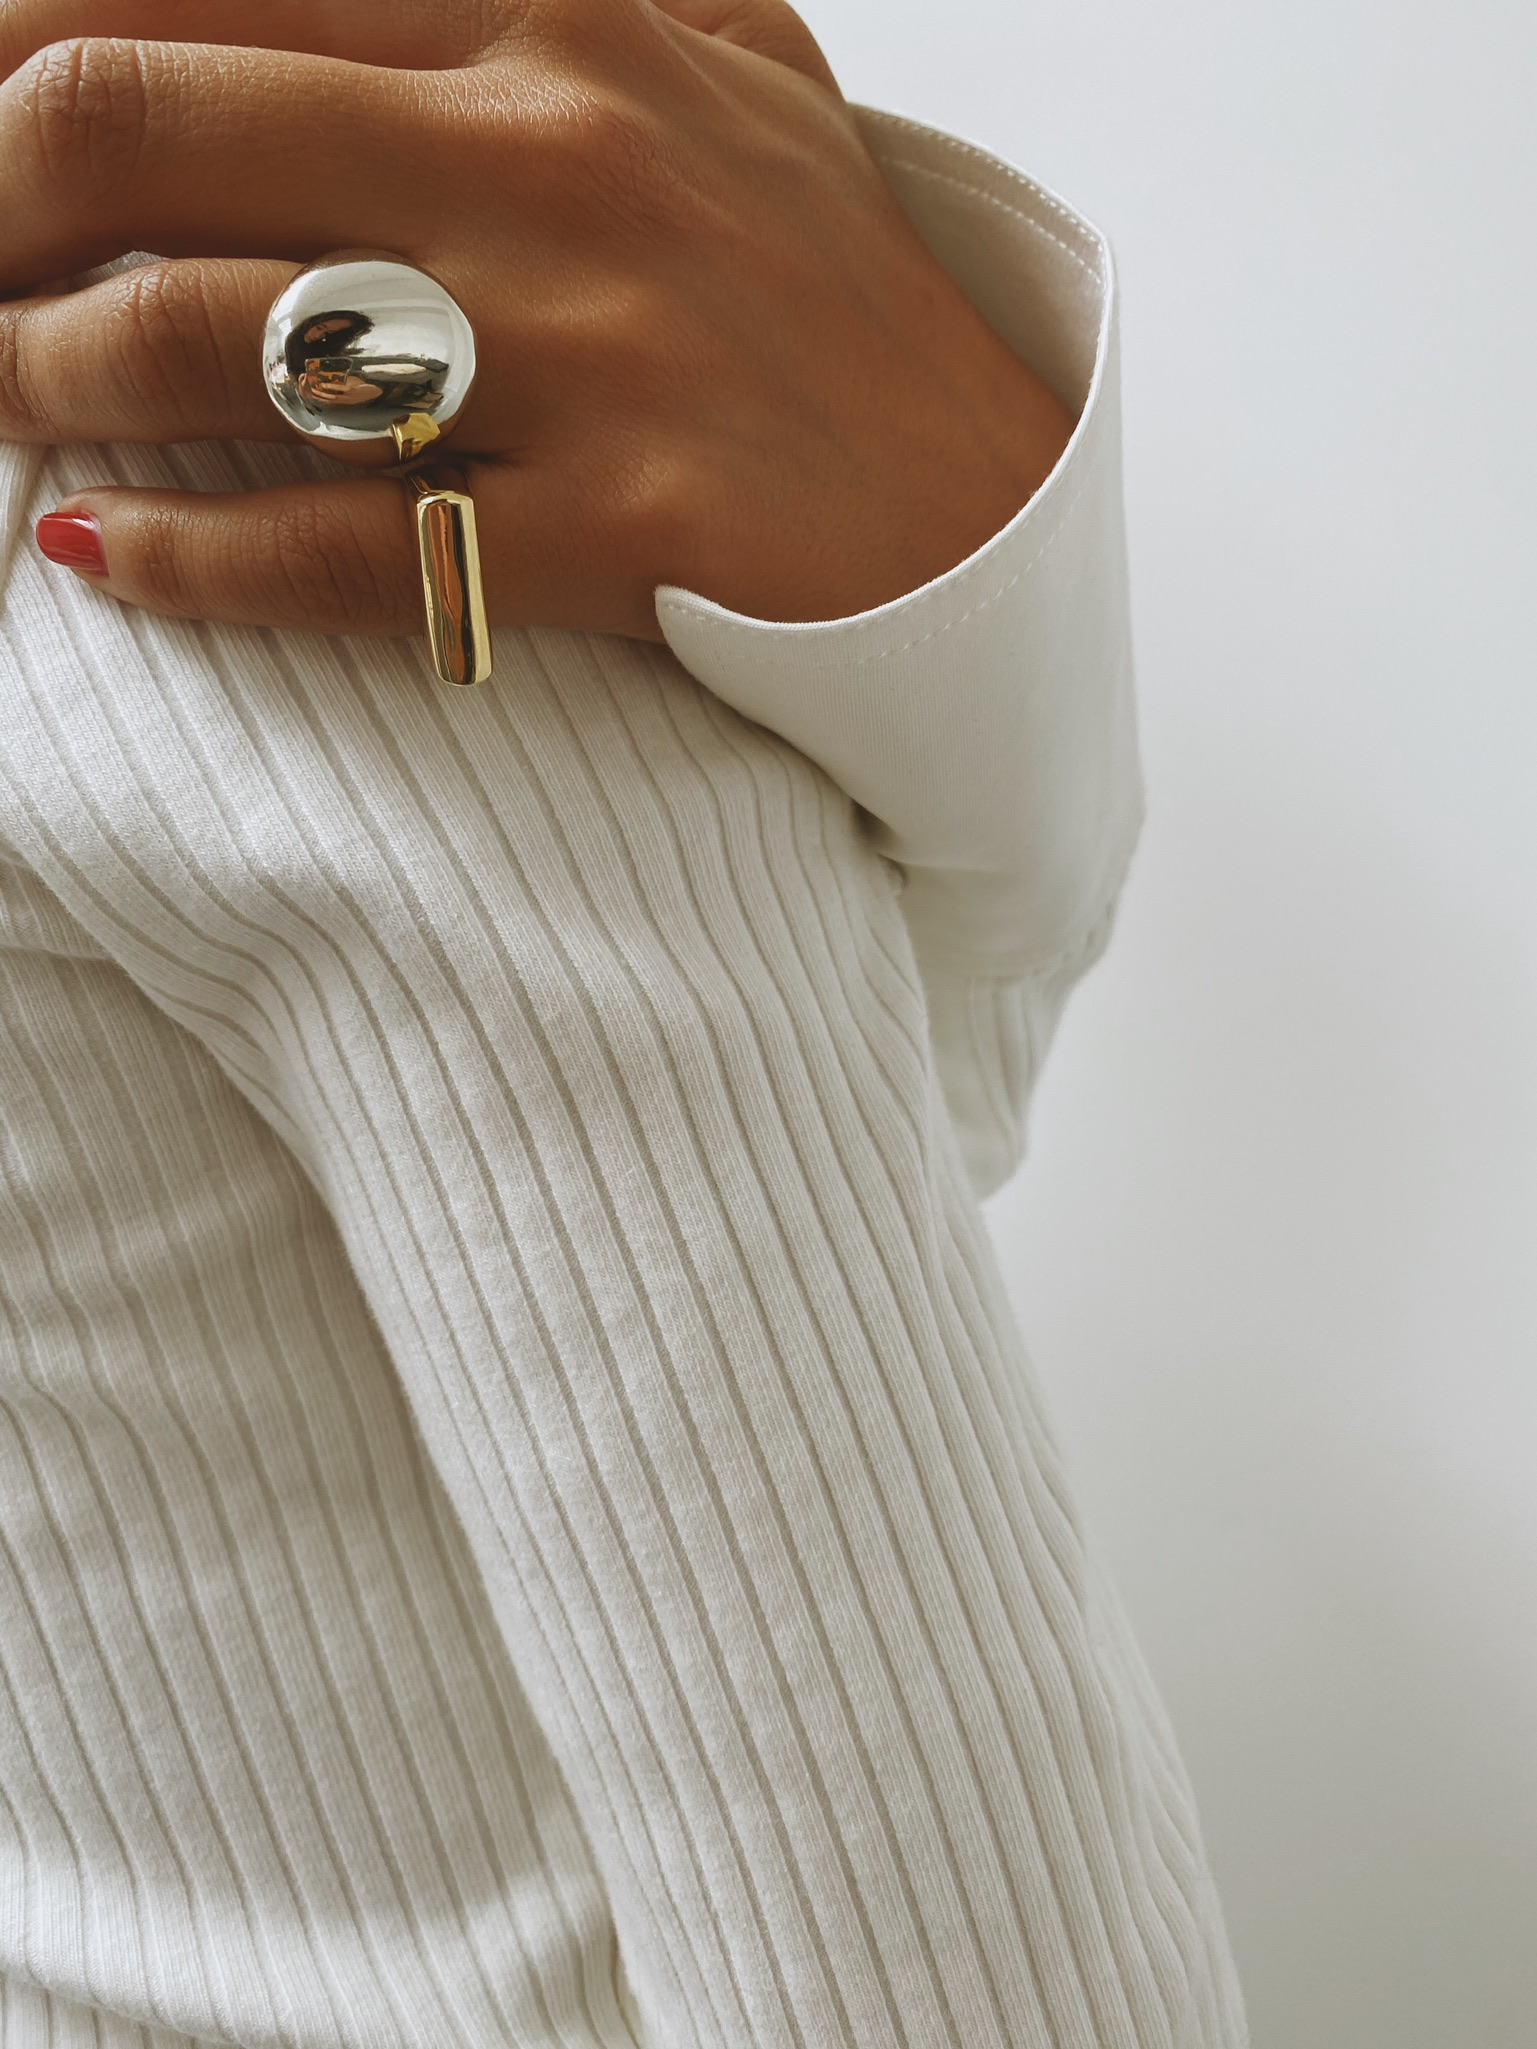 Bobbi Ring - Silver by Emili on curated-crowd.com